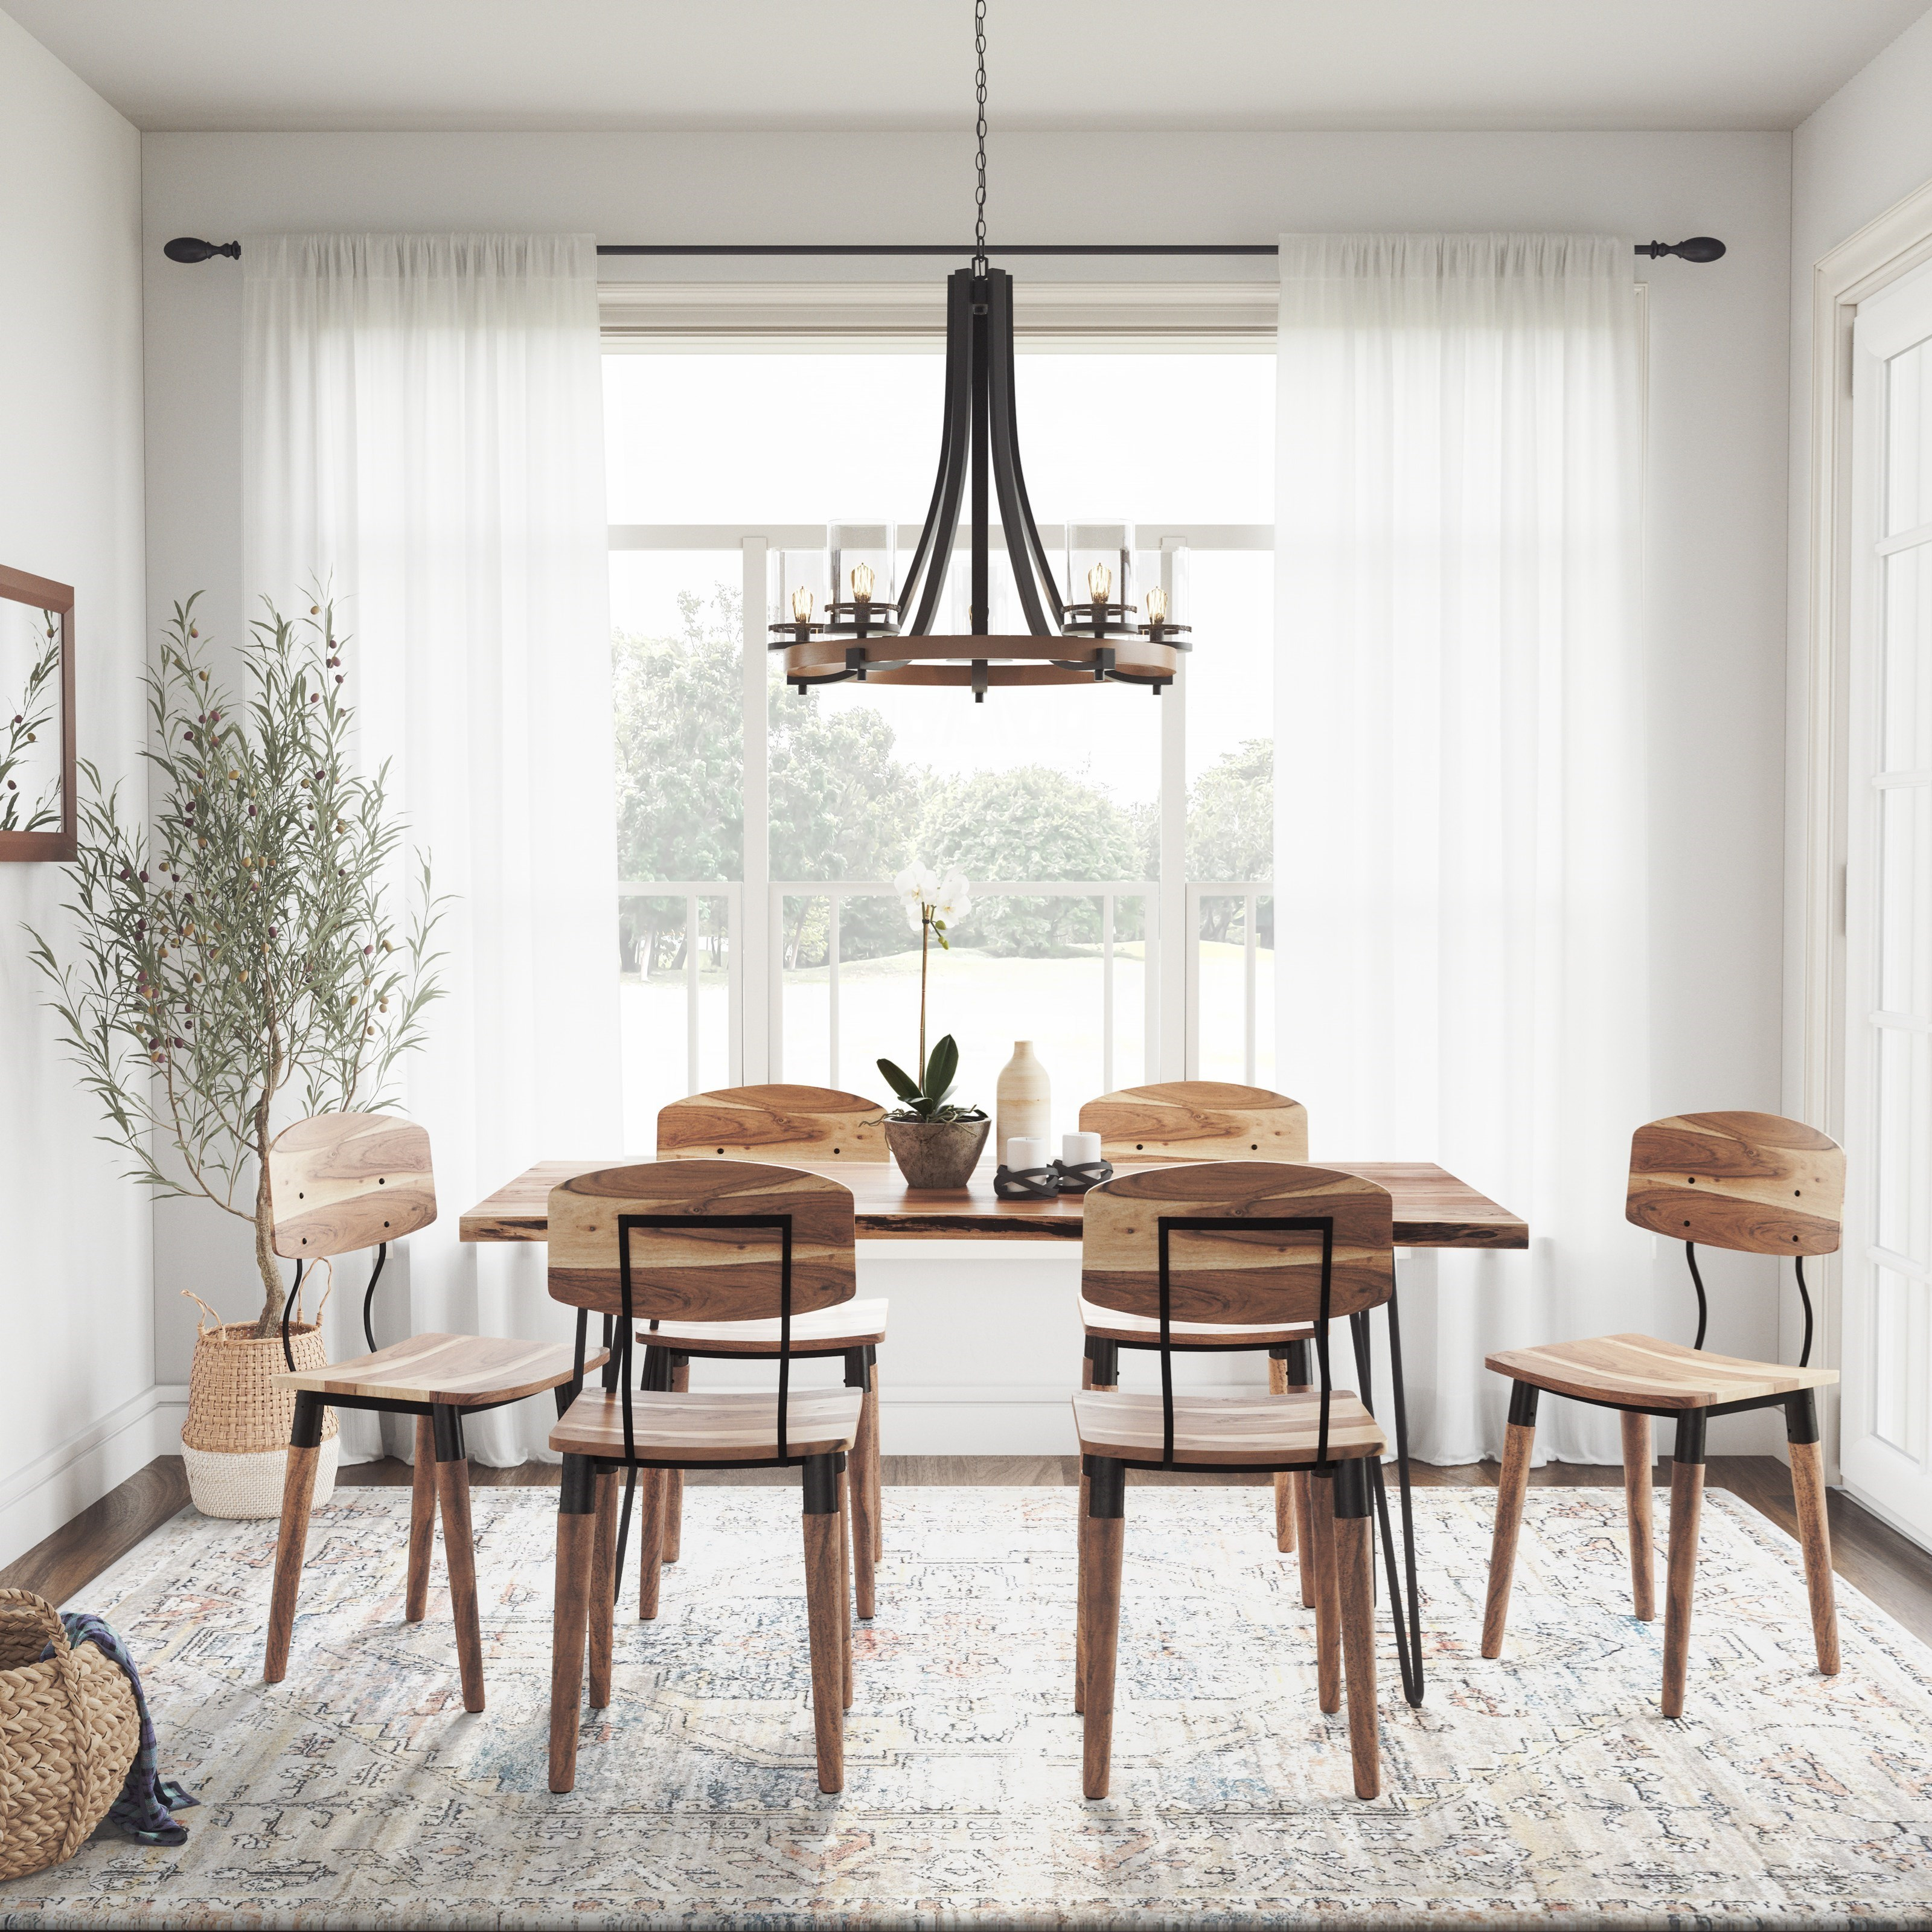 Nature's Edge 7-Piece Table and Chair Set by Jofran at Sparks HomeStore